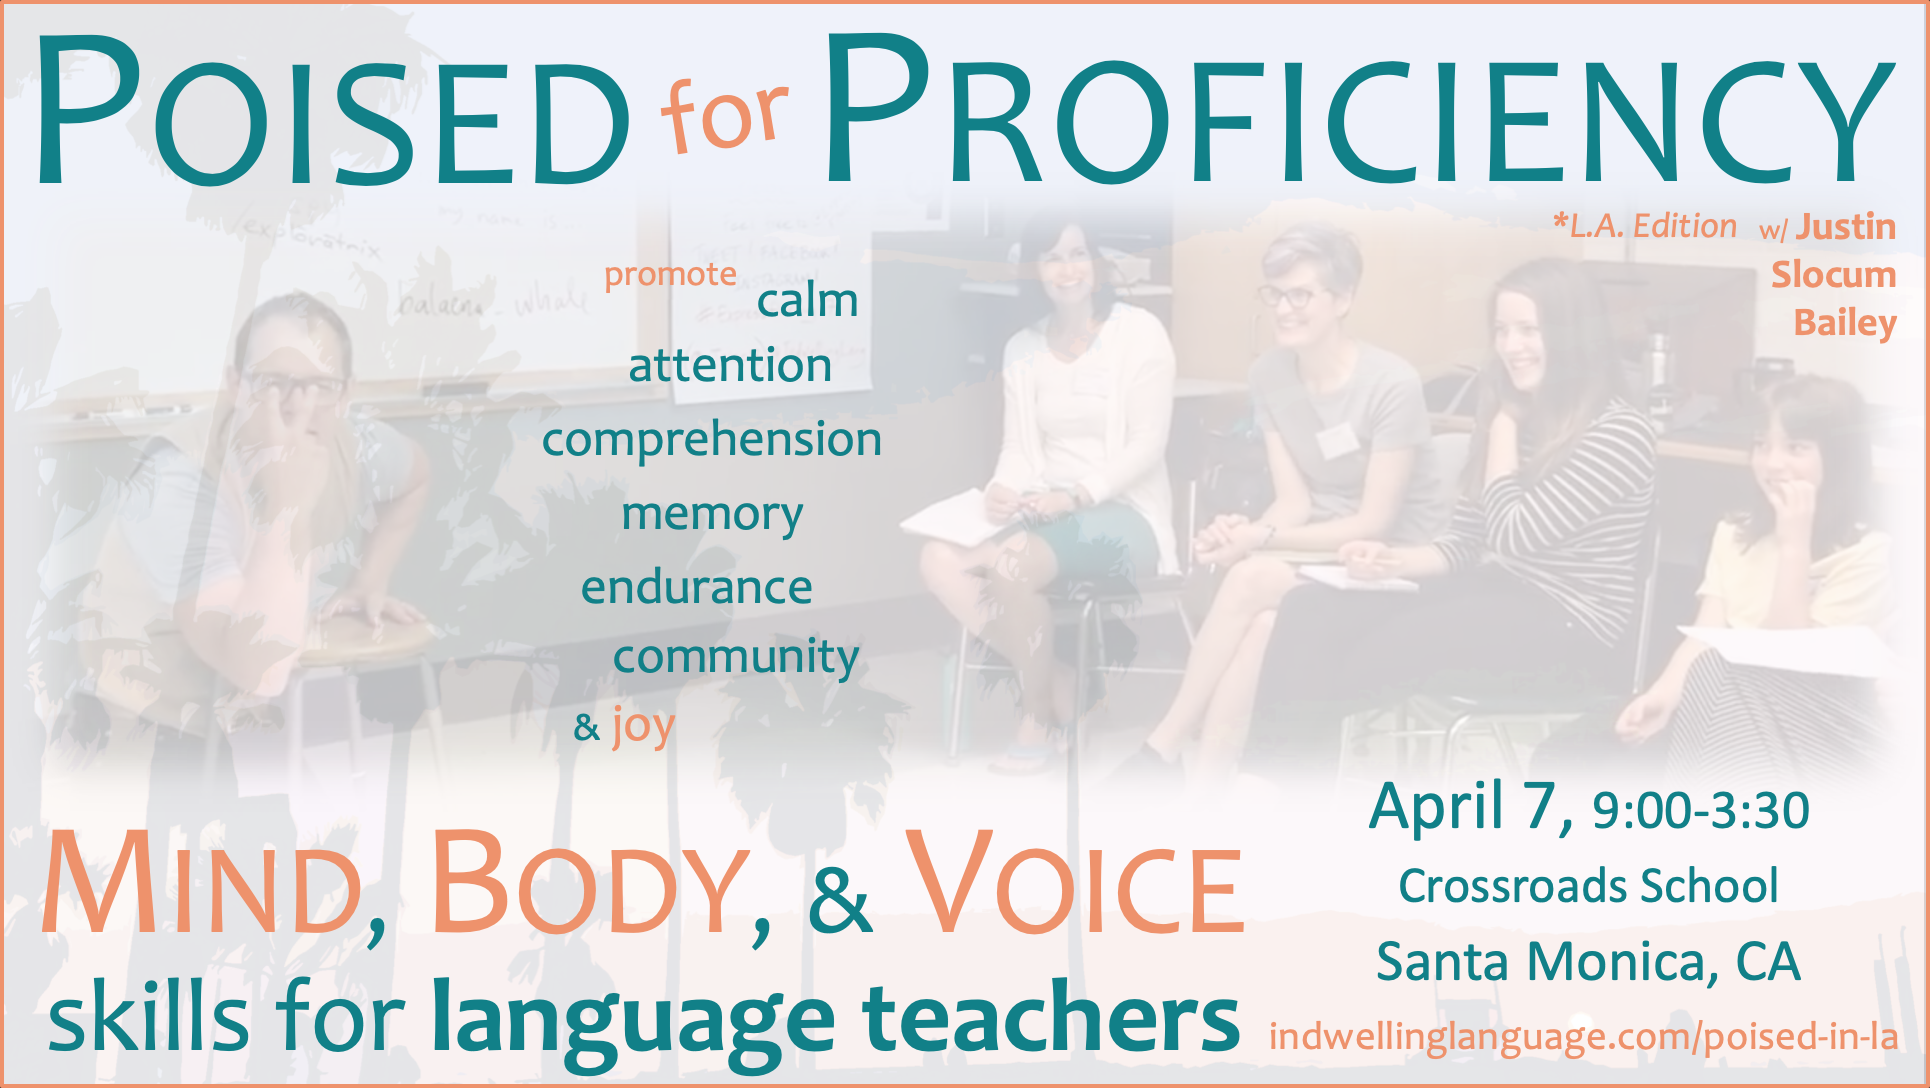 Poised for Proficiency: Mind, Body, & Voice Skills for Language Teachers workshop in Santa Monica, CA